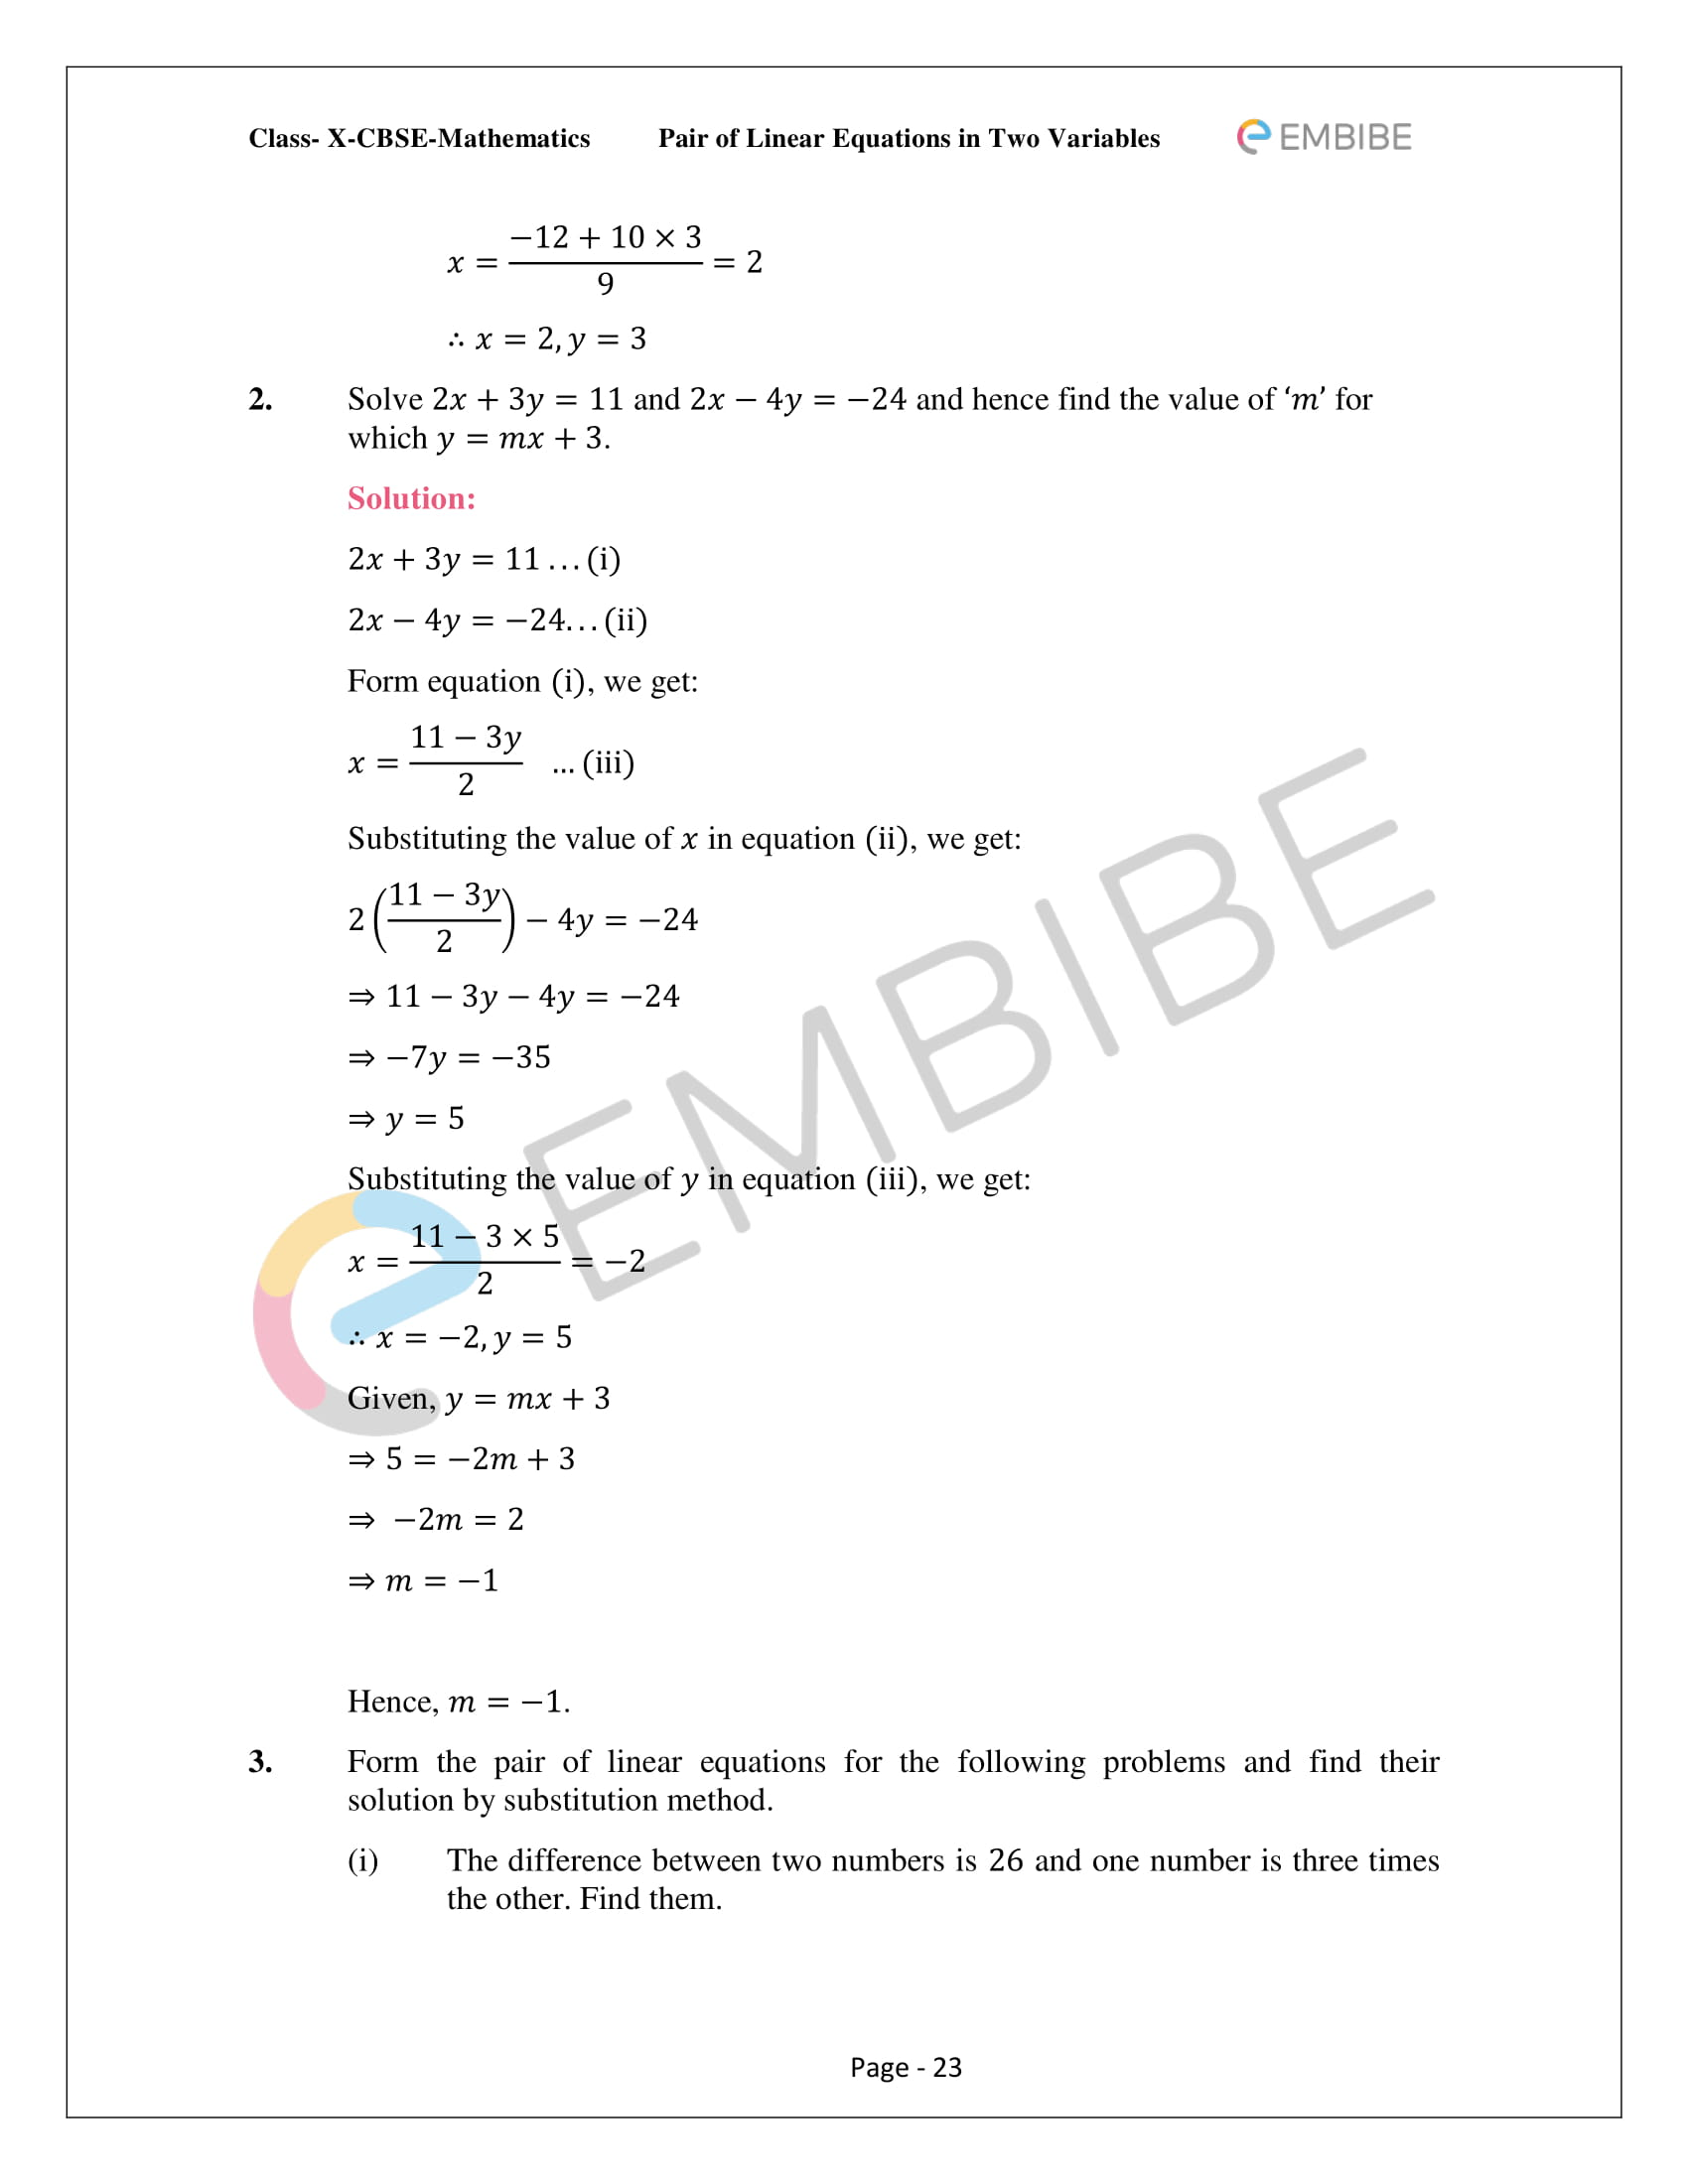 CBSE NCERT Solutions For Class 10 Maths Chapter 3 - Pair of Linear Equations In Two Variables - 23